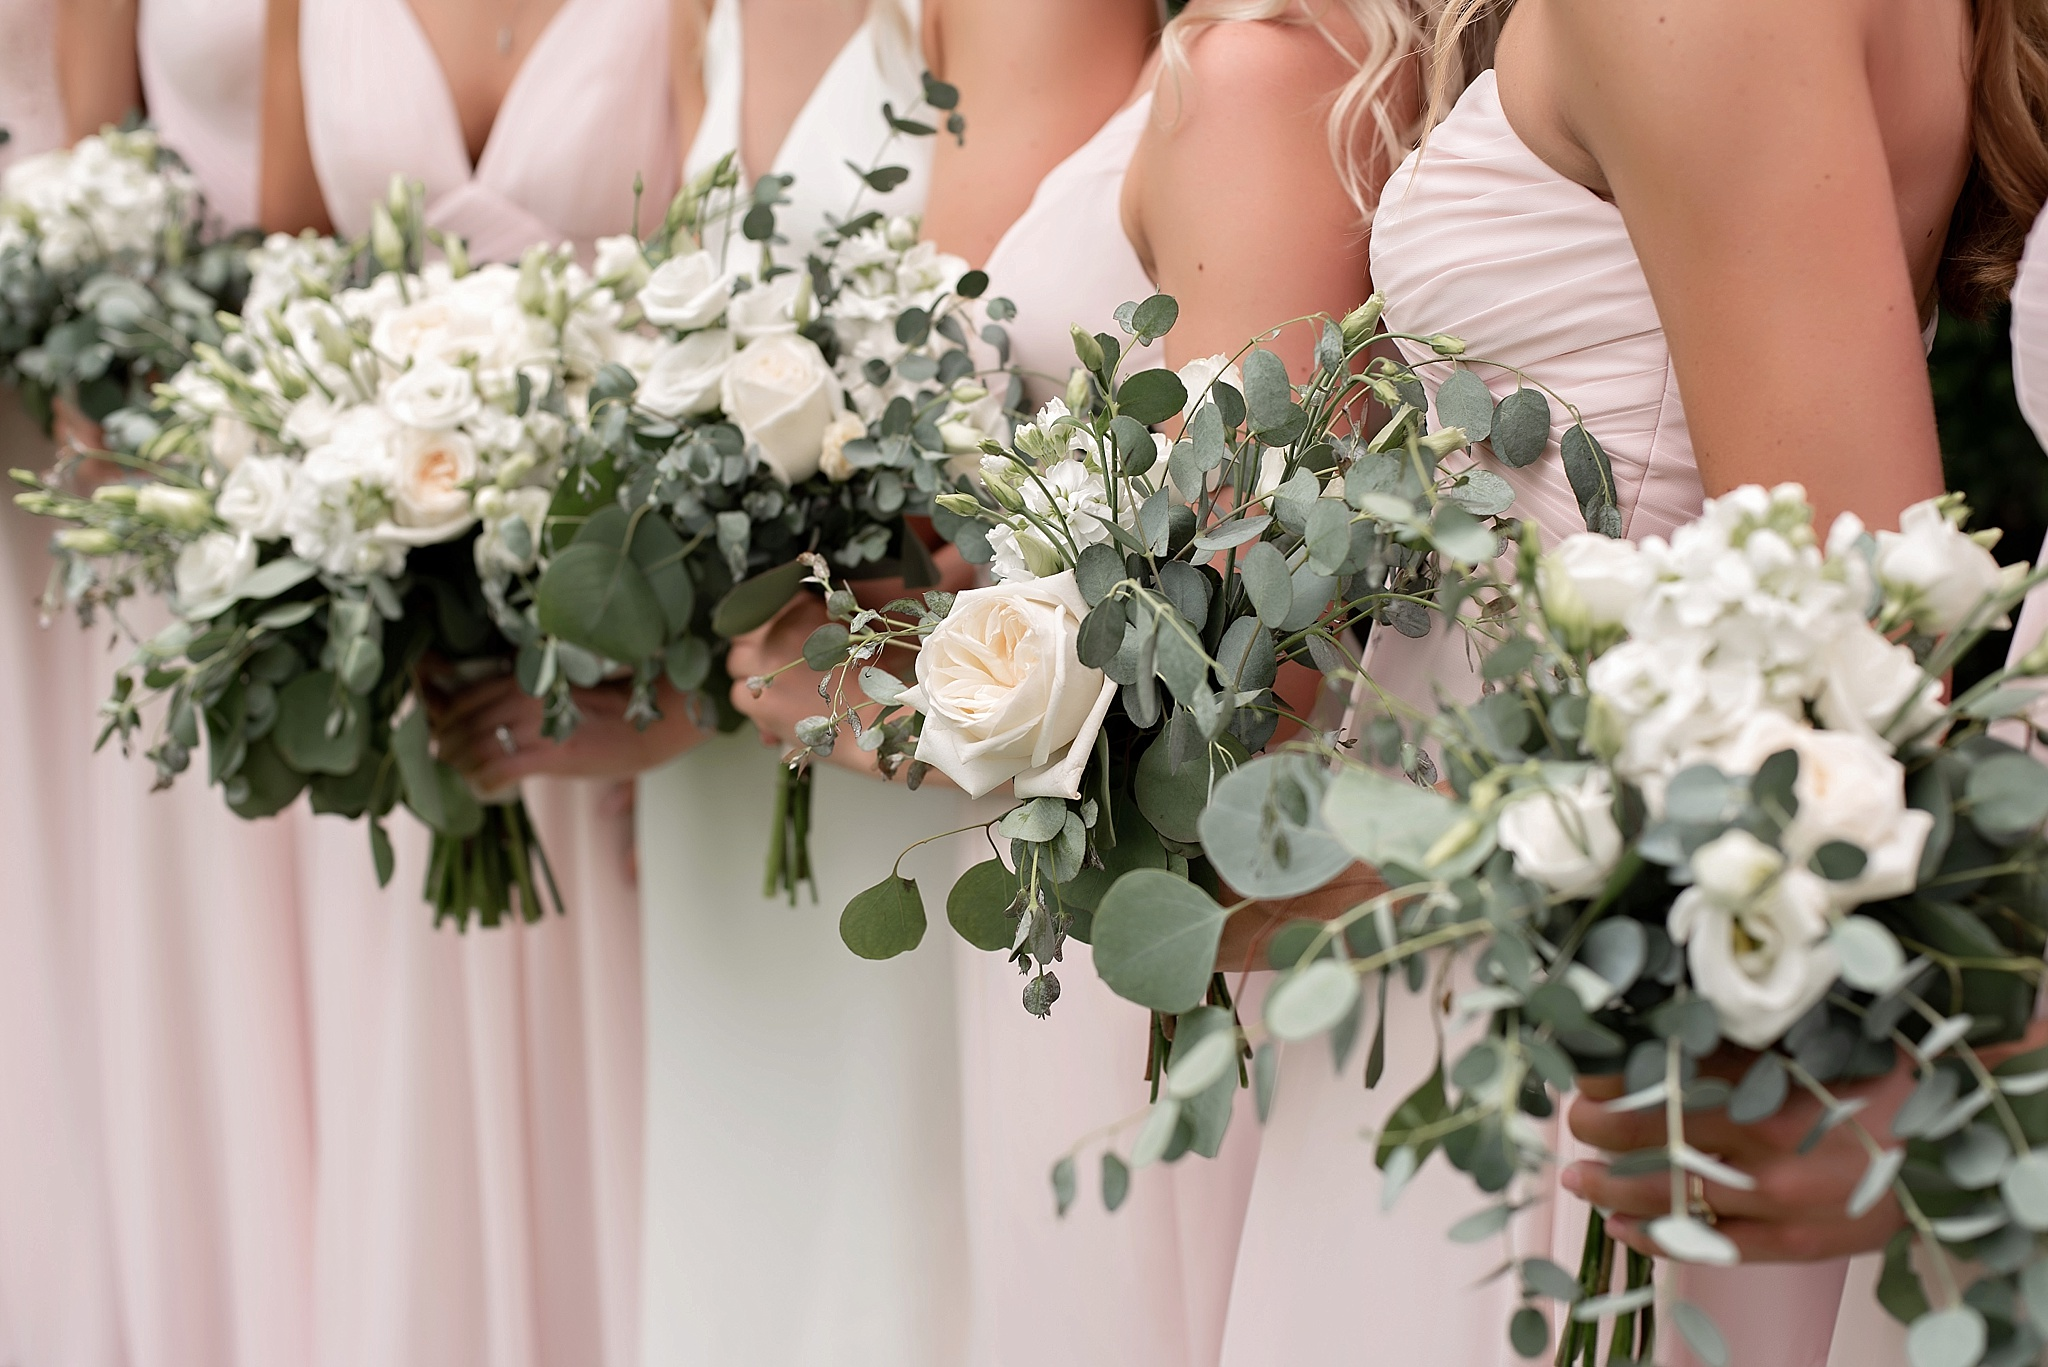 blush bridesmaid dresses with white florals